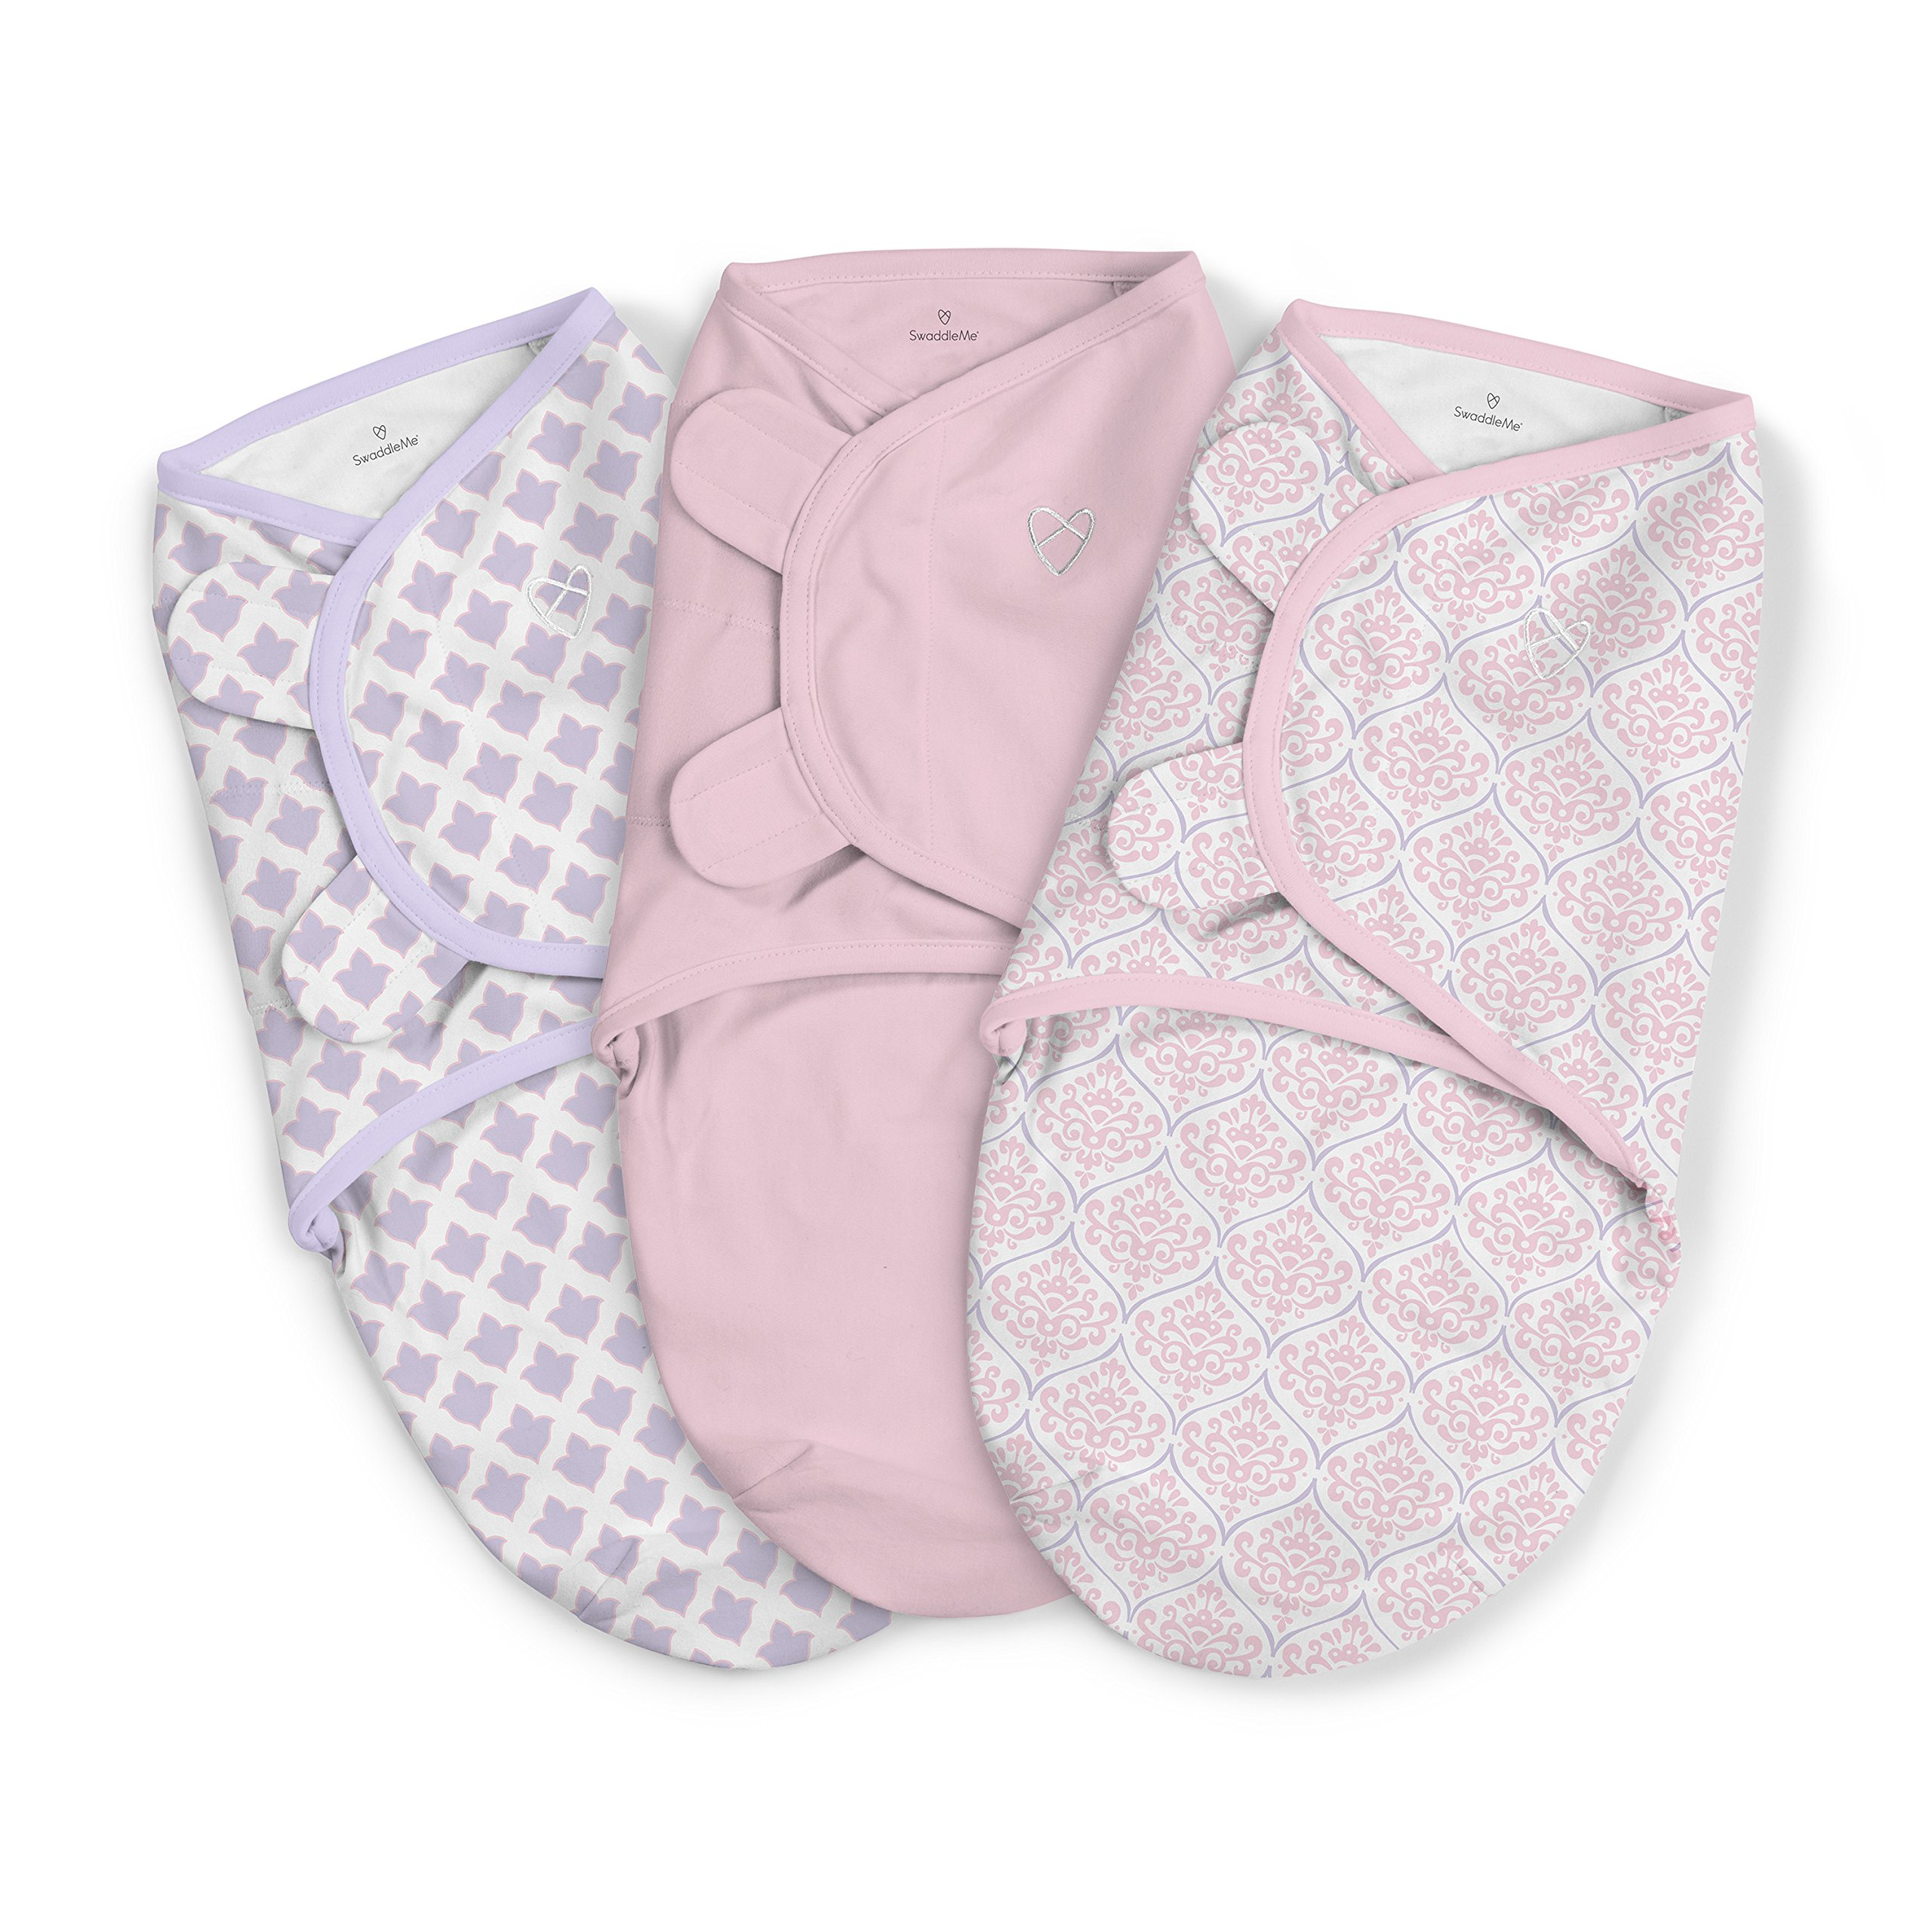 SwaddleMe Original Swaddle 3-PK, You're Mine Adeline, Large